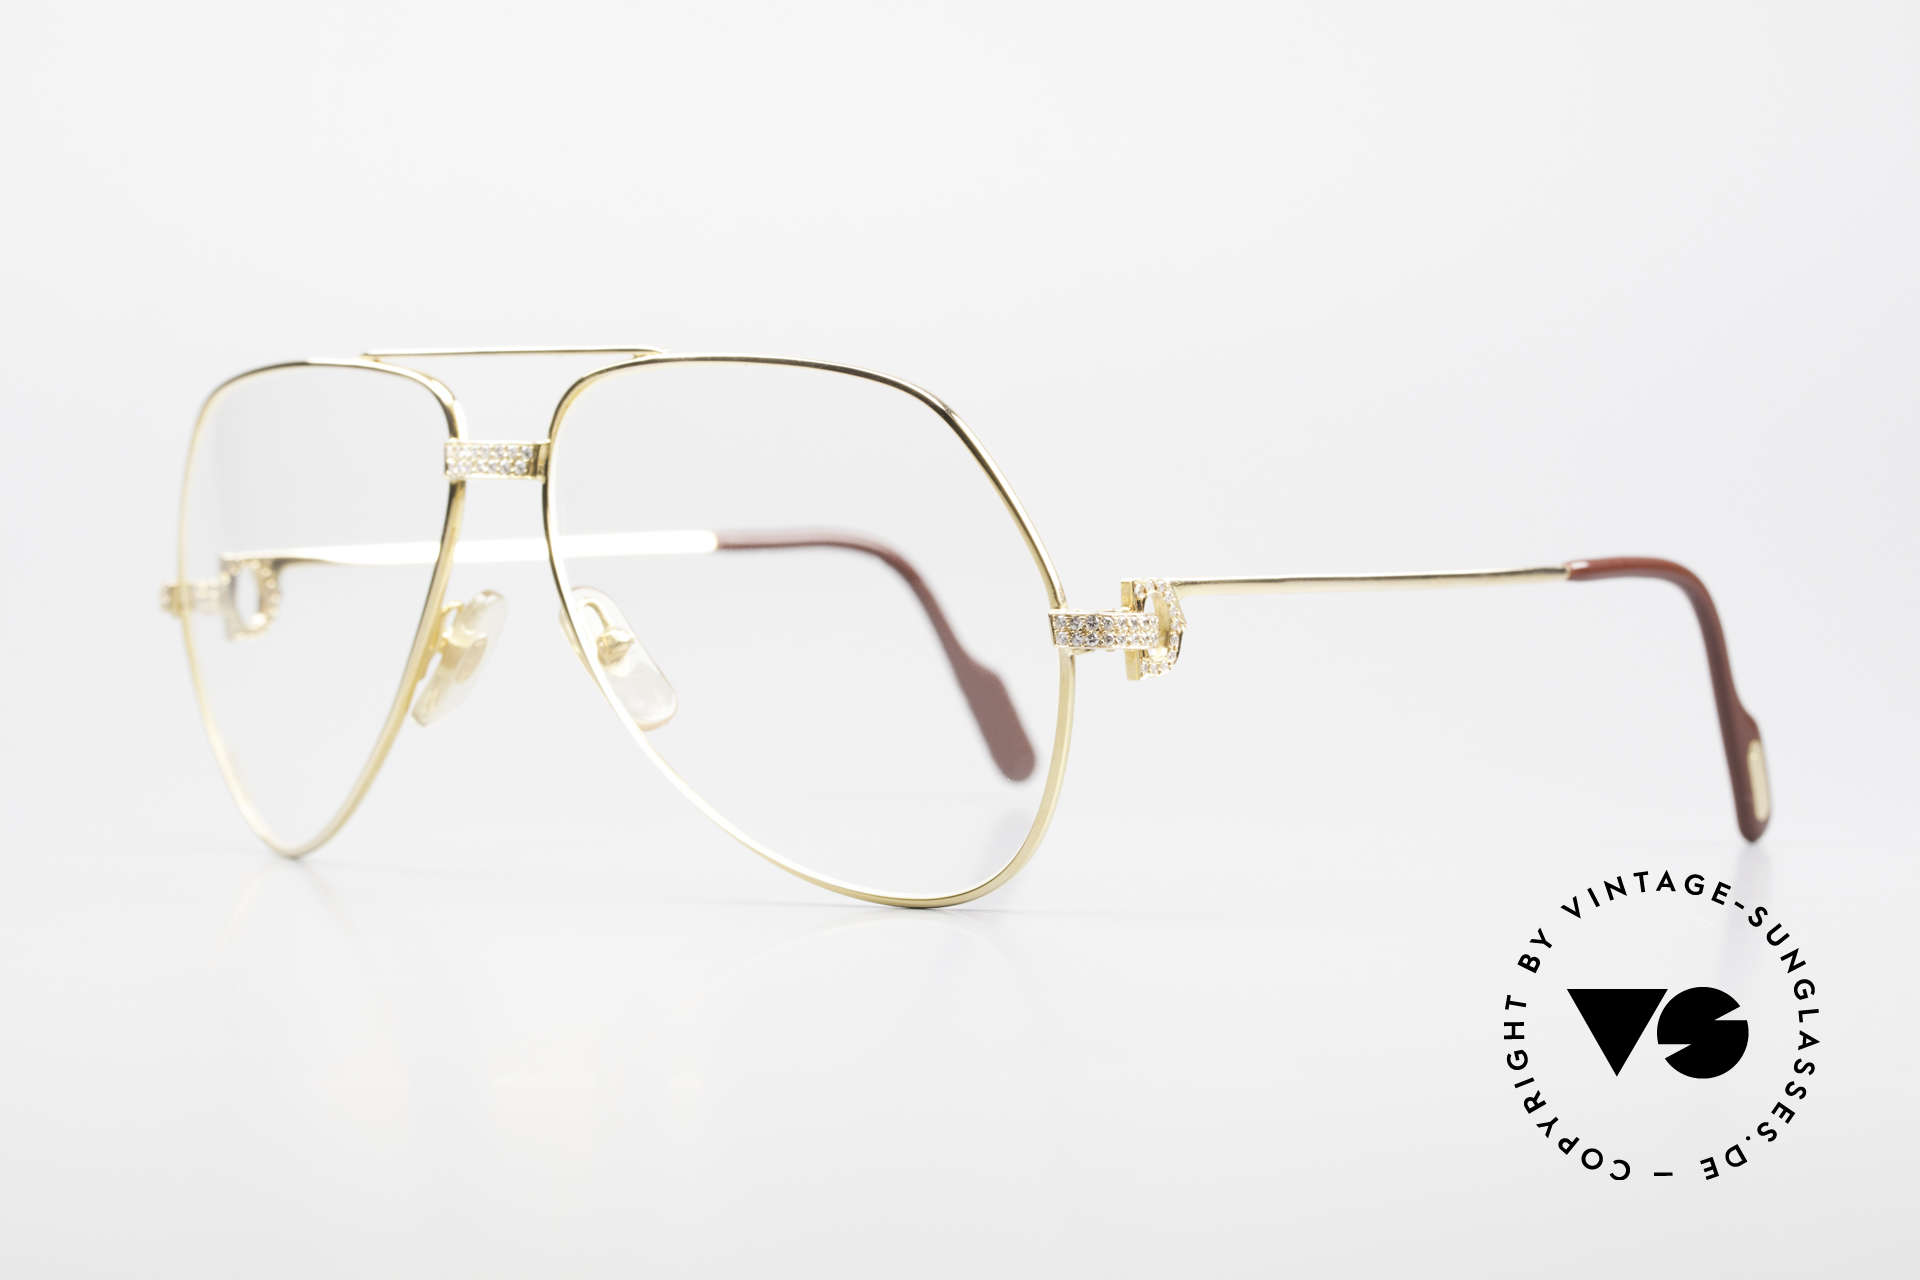 Cartier Grand Pavage Diamond Glasses Solid Gold, Grand Pavage was only made upon request & prepayment, Made for Men